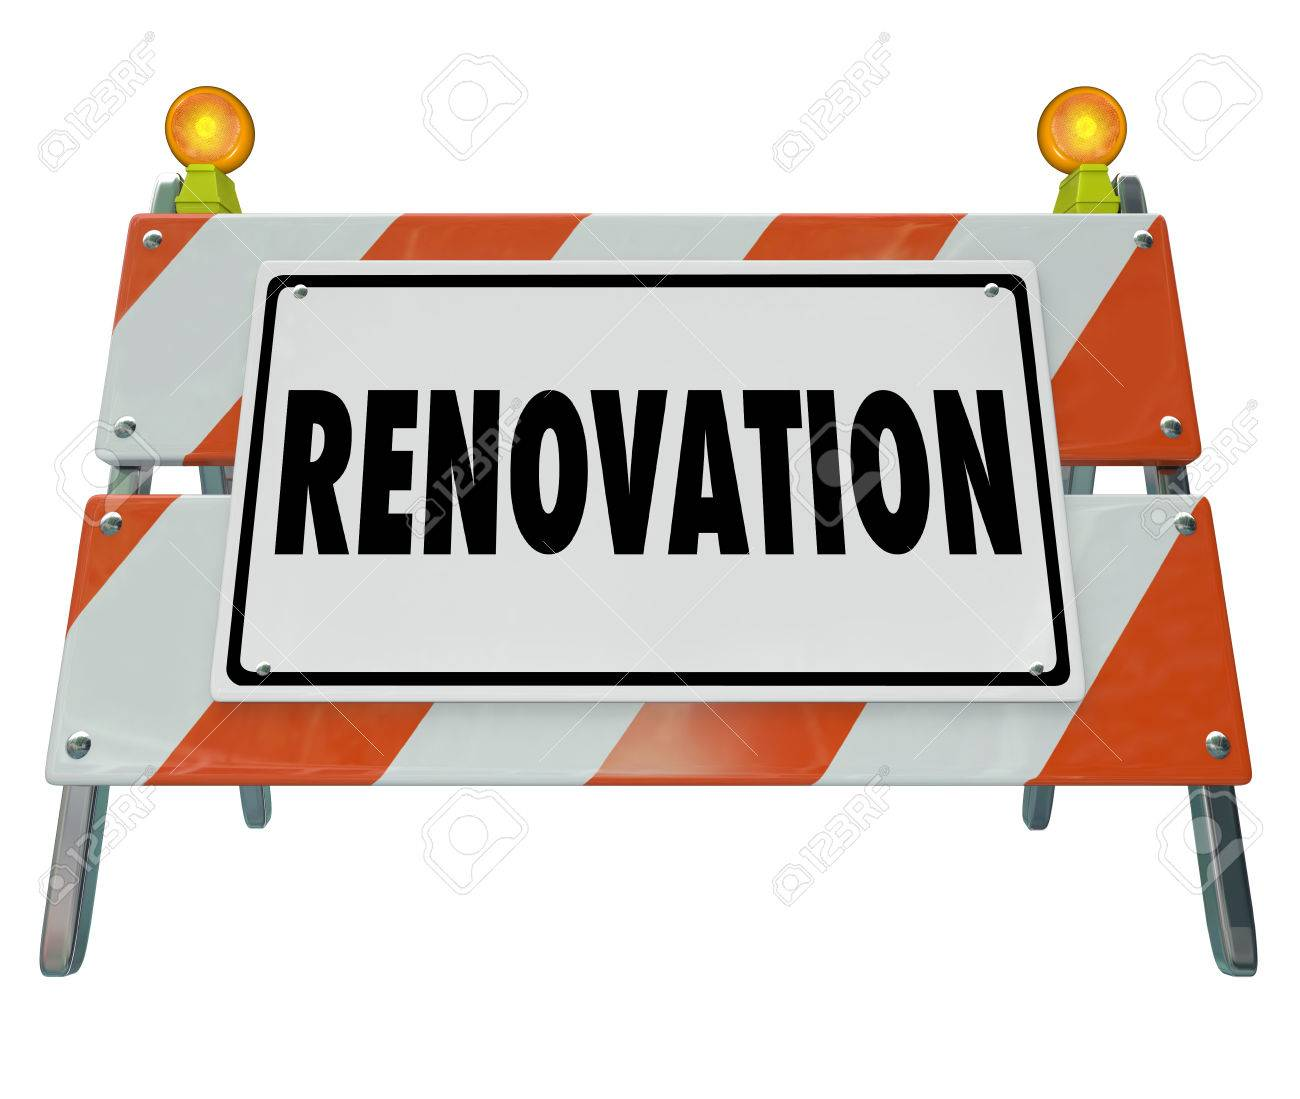 renovate word on a road construction or home improvement sign or barrier to warn of building